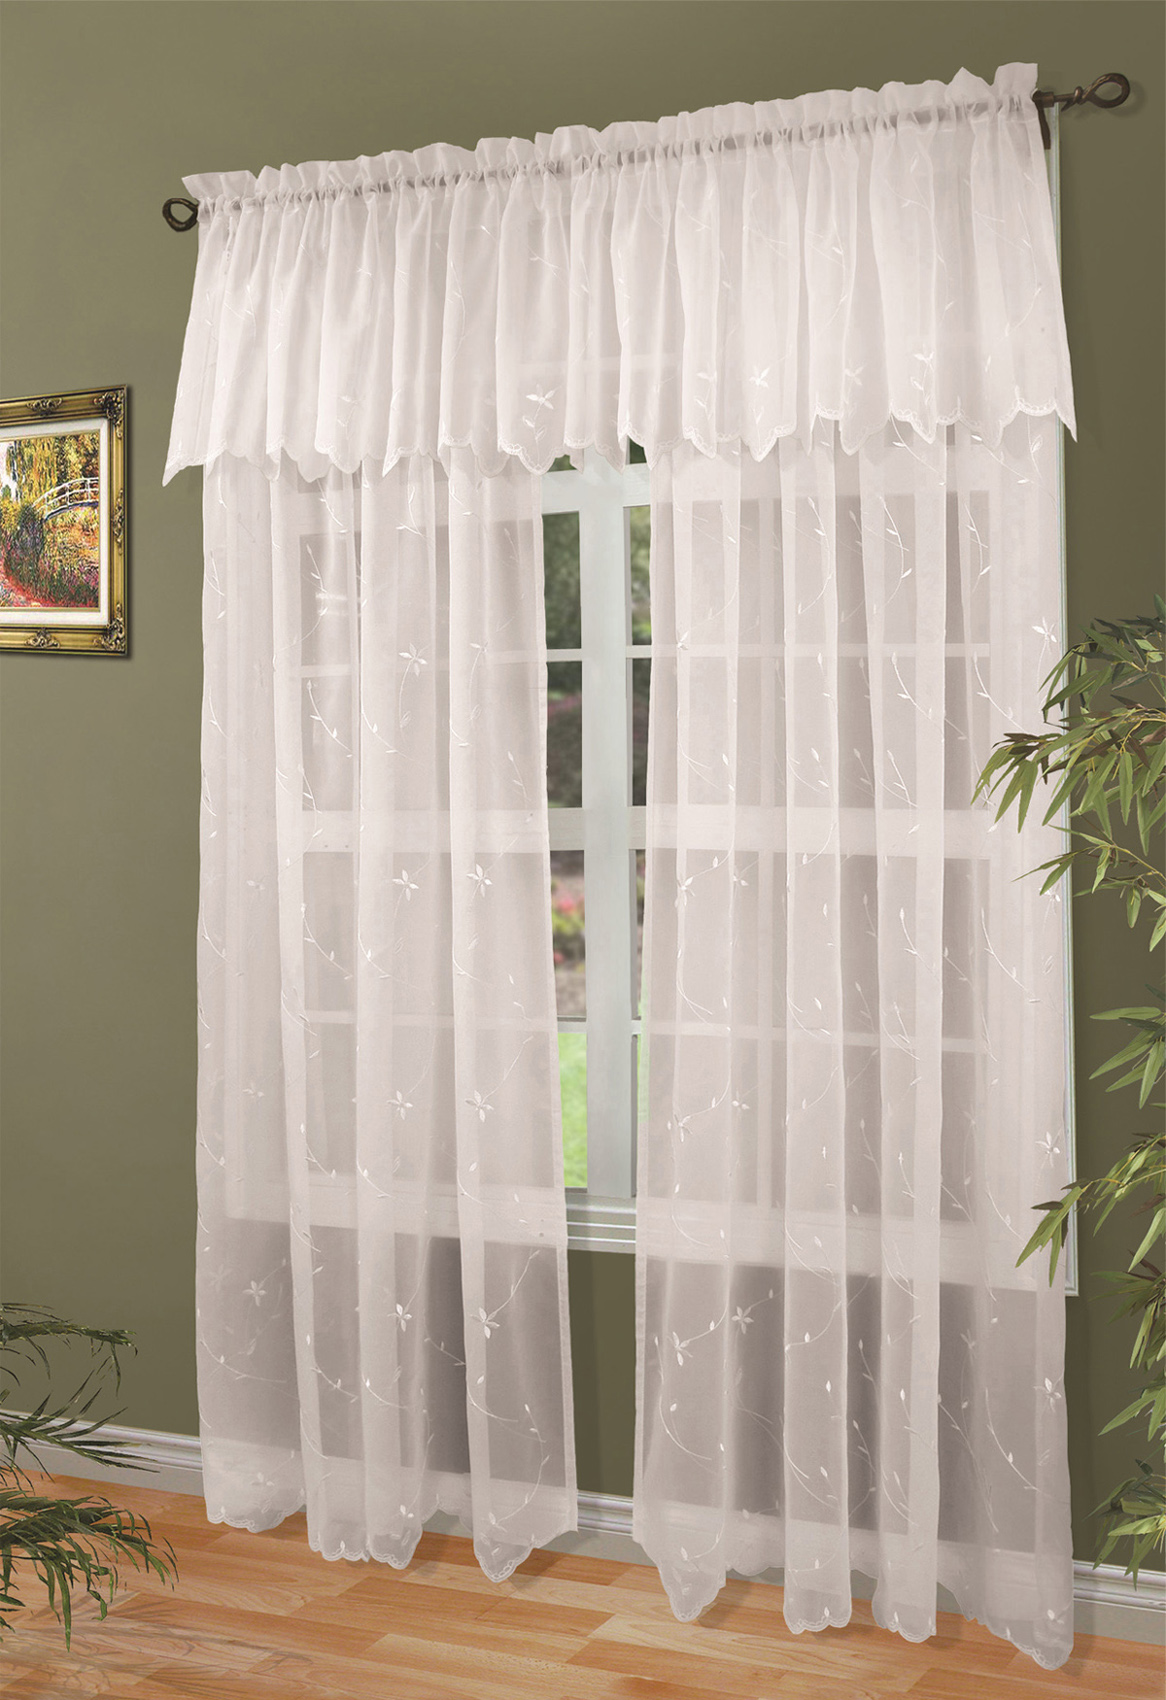 White Sheer Door Panel Curtains Sheer Curtain And Door Panels Sheer Curtain Panels At